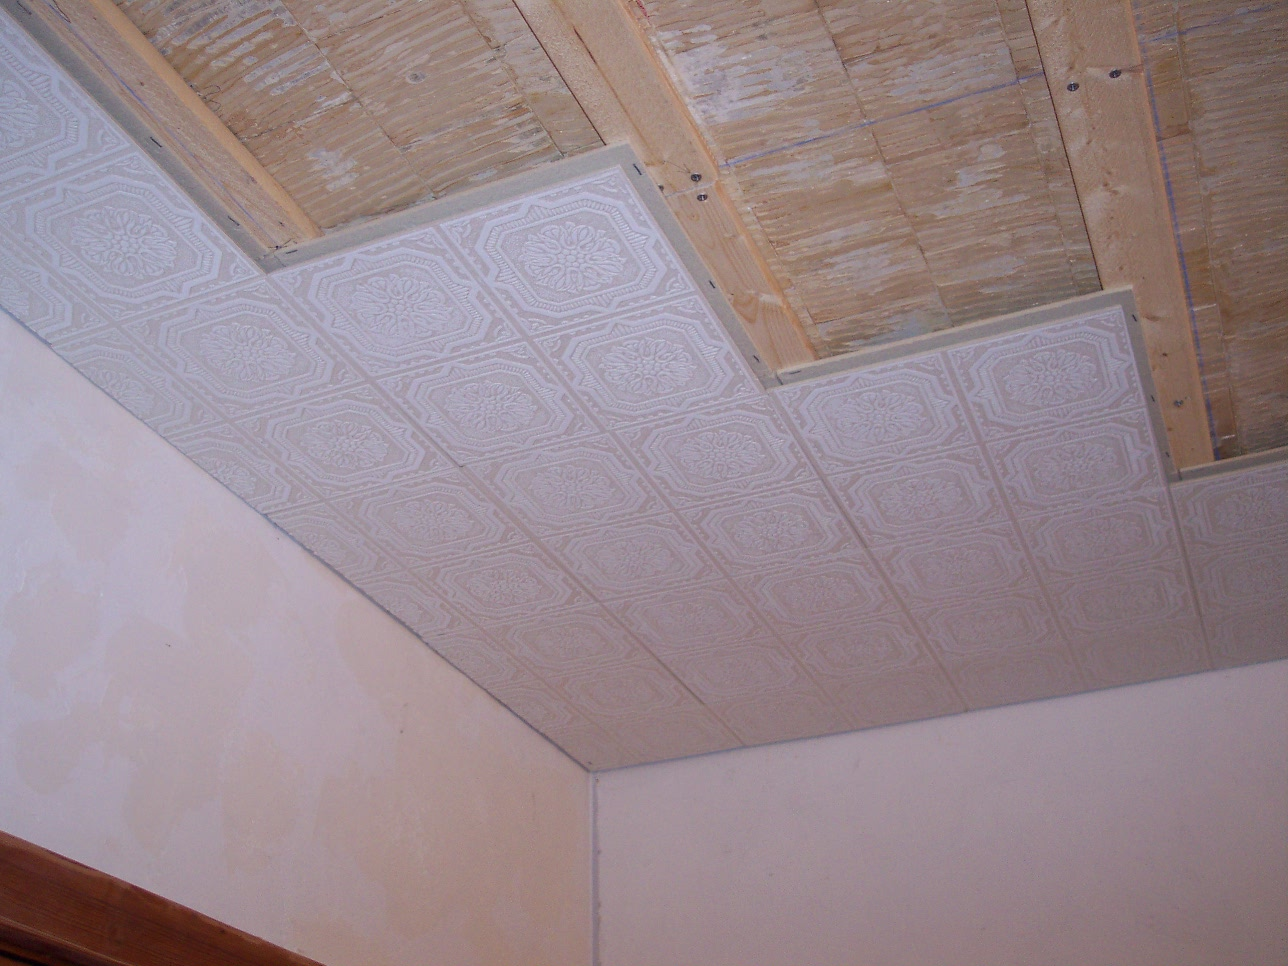 How to install ceiling tile - Kitchen Remodeling Install Armstrong Wellington Ceiling Tiles